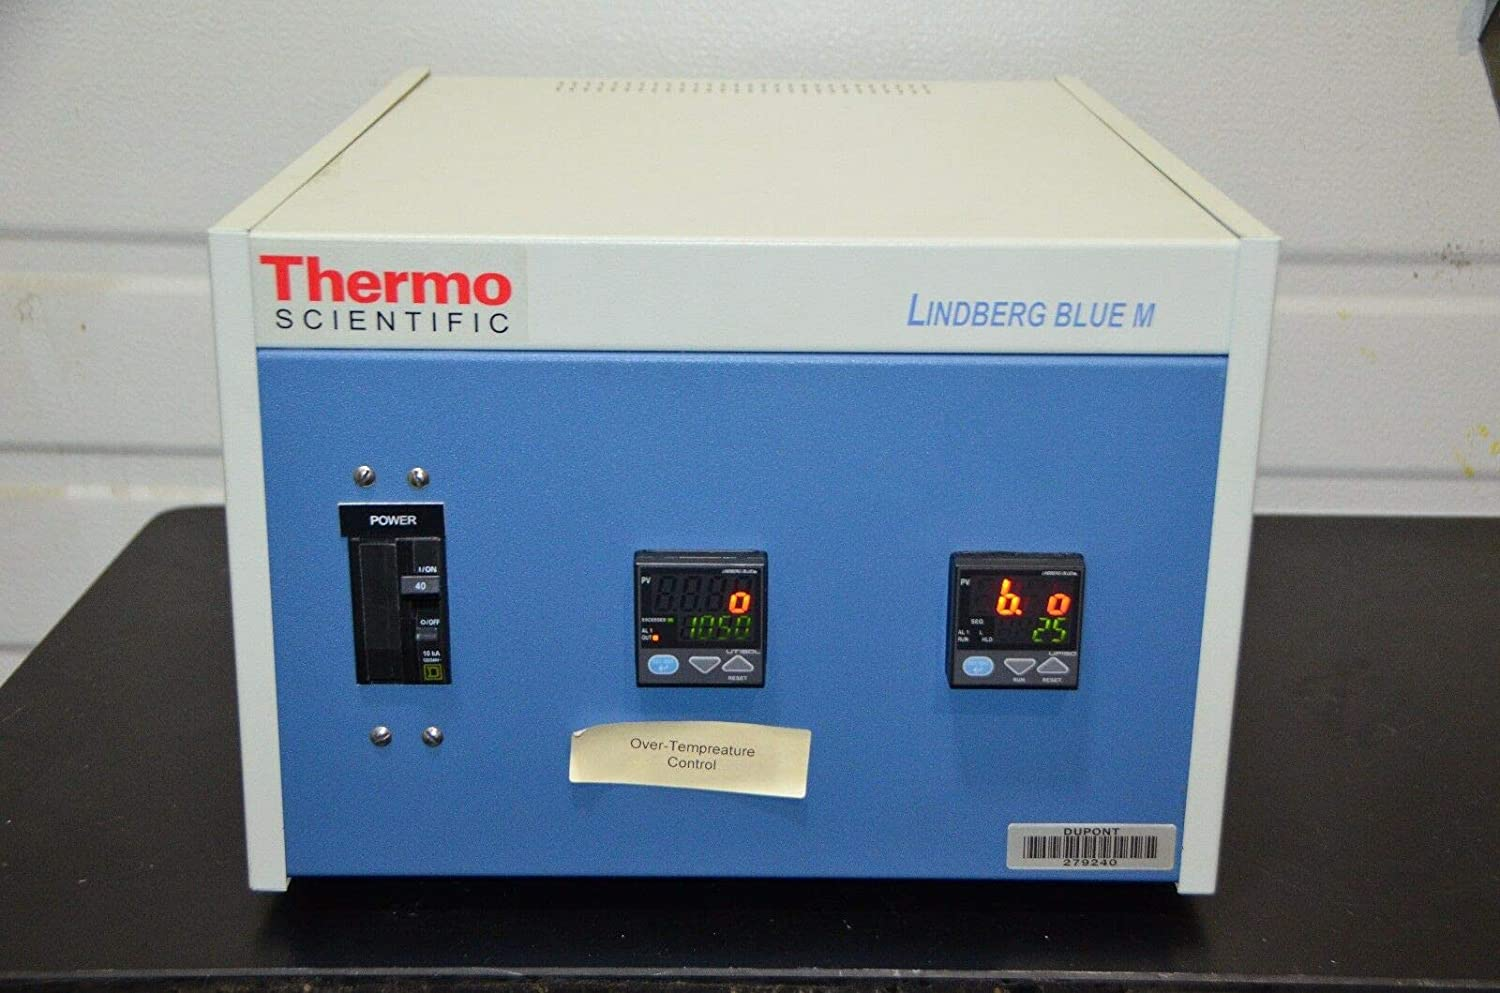 labtechsales Thermo Scientific Lindberg Blue M CC58114PBC-1 Furnace Controller 1200C OTC 240V